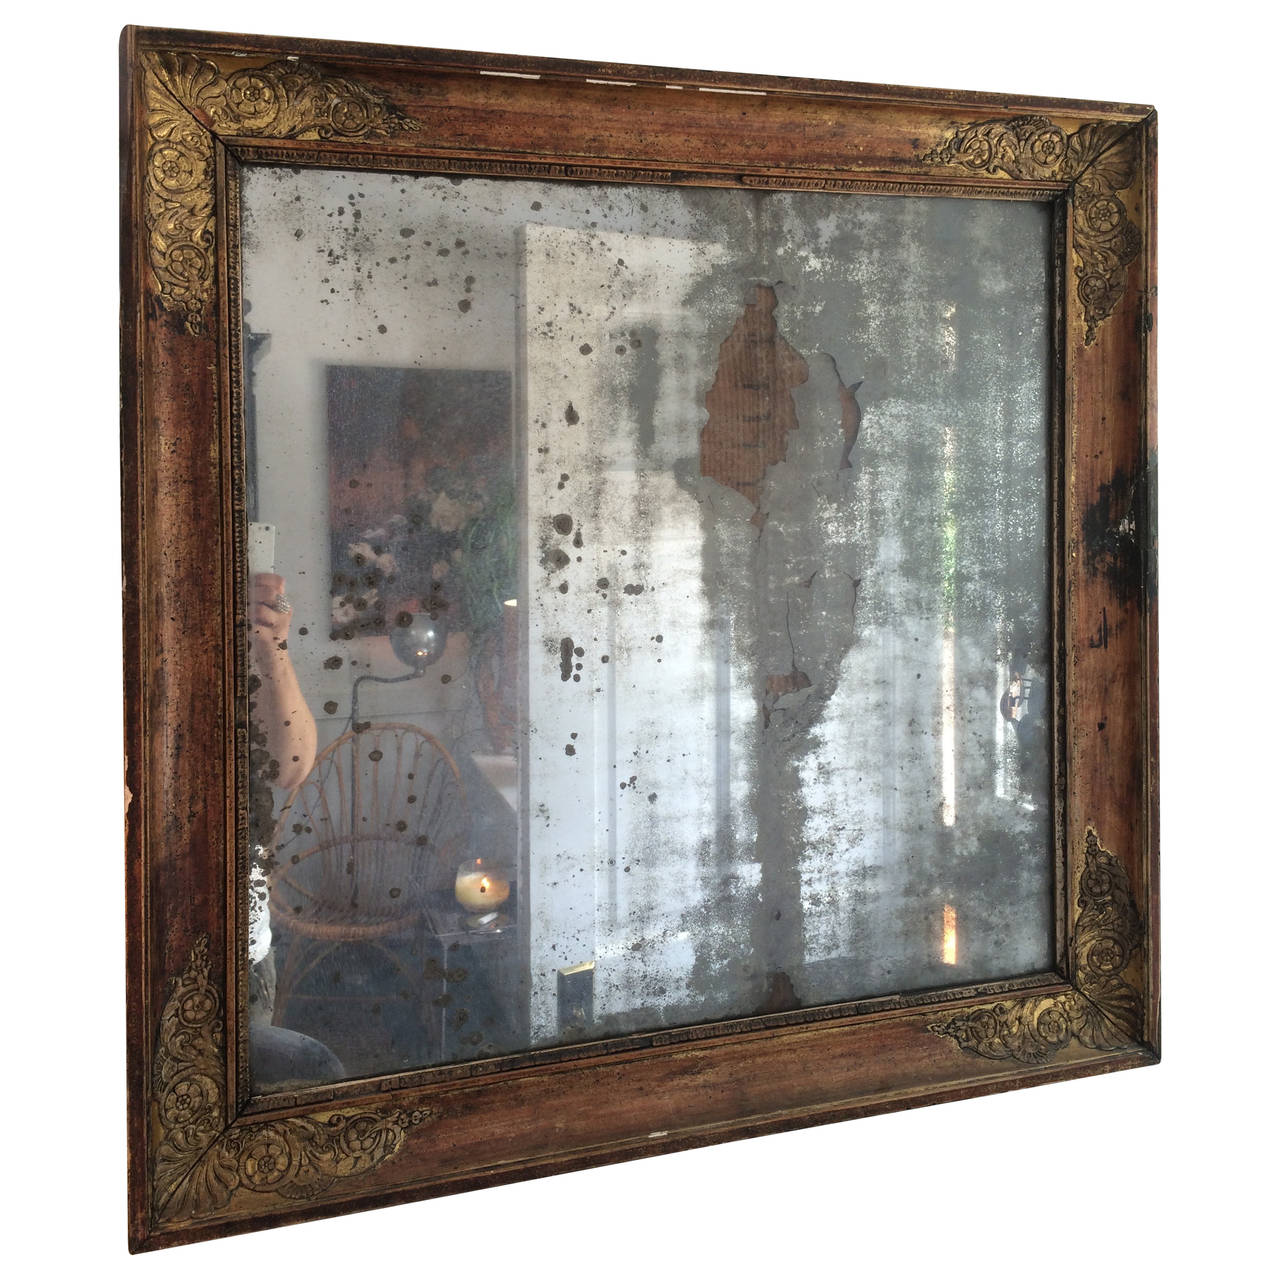 Vintage Italian Mirror With Worn Wood And Giltwood Frame